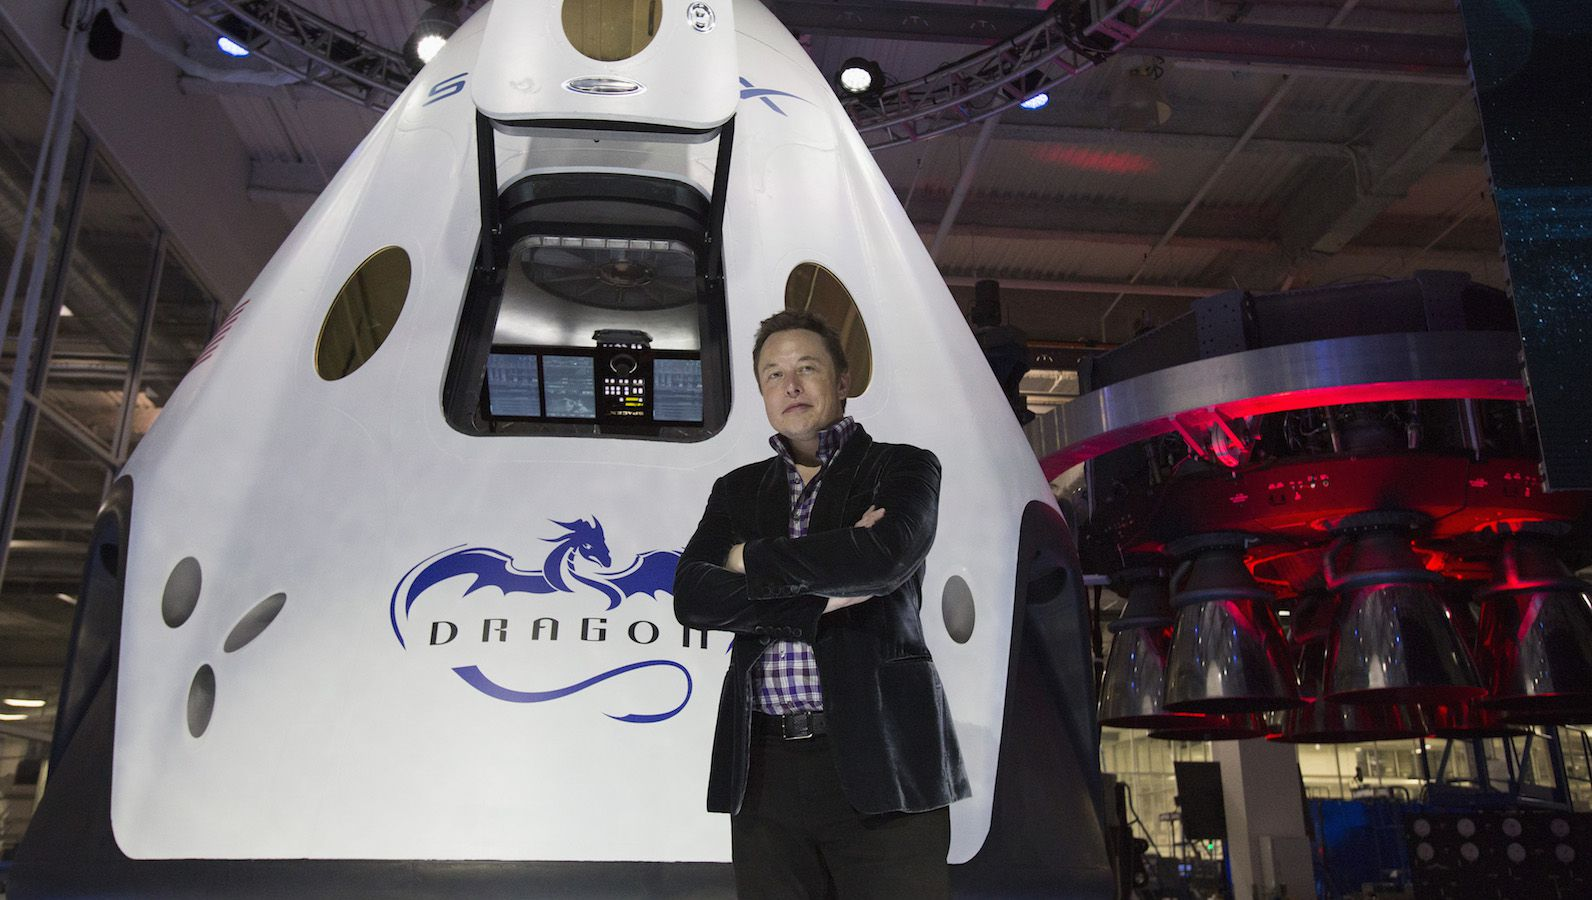 SpaceX CEO Elon Musk poses by the Dragon V2 spacecraft after it was unveiled in Hawthorne, California May 29, 2014. Space Exploration Technologies, or SpaceX, on Thursday unveiled an upgraded passenger version of the Dragon cargo ship NASA buys for resupply runs to the International Space Station. REUTERS/Mario Anzuoni  (UNITED STATES - Tags: POLITICS TRANSPORT SCIENCE TECHNOLOGY SOCIETY) - RTR3RGLD